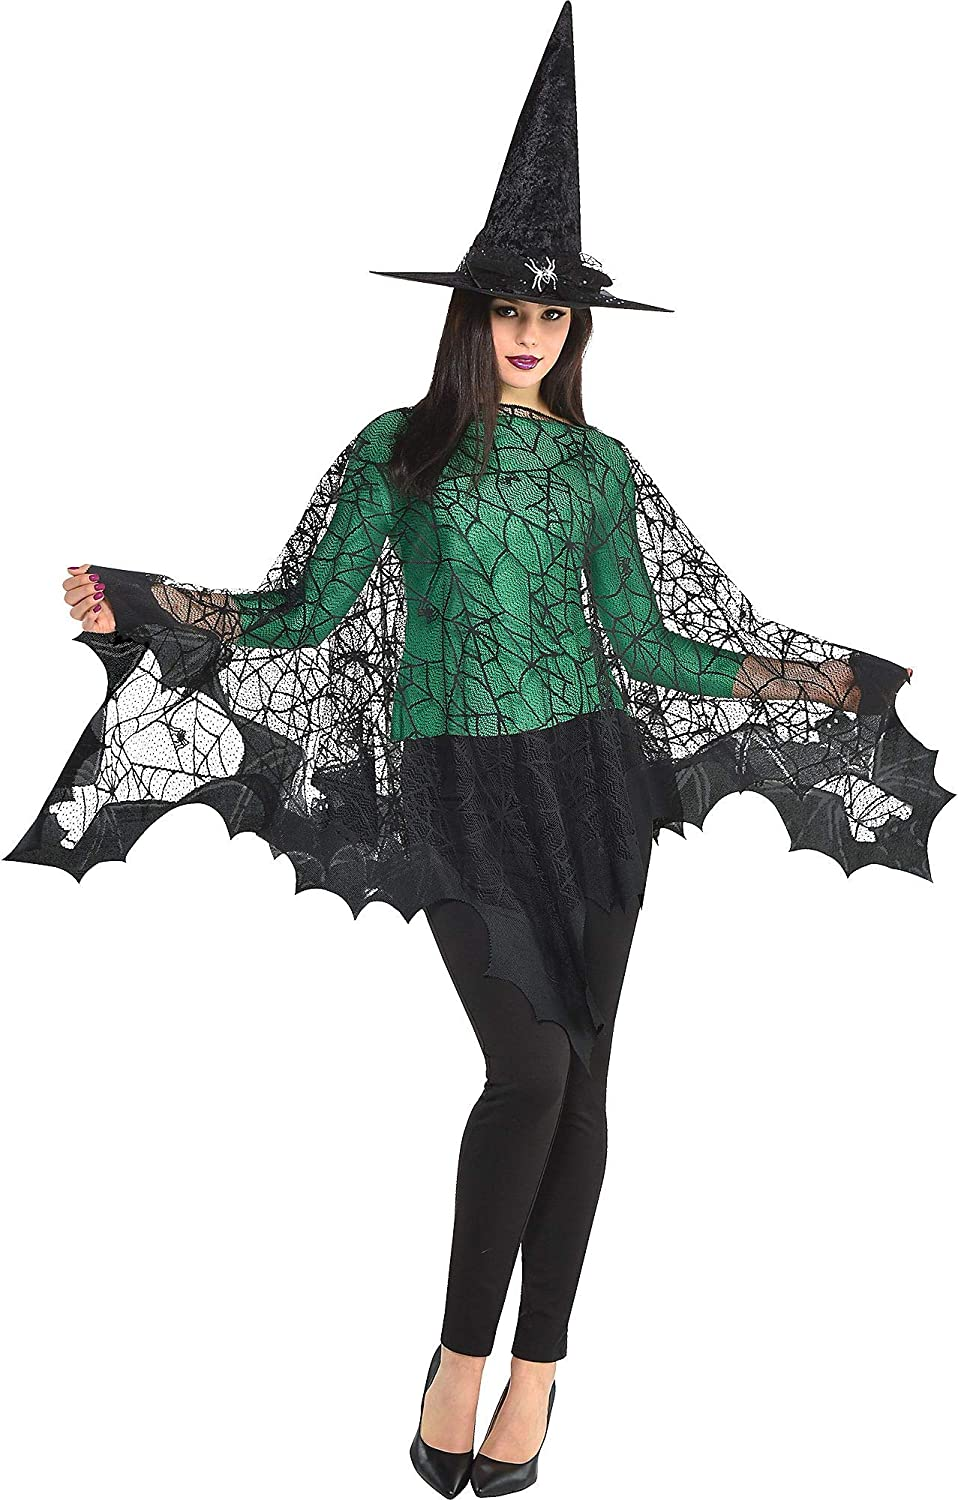 amscan Black Max 57% OFF Spider Web Poncho- One Size 1 pc. Reservation